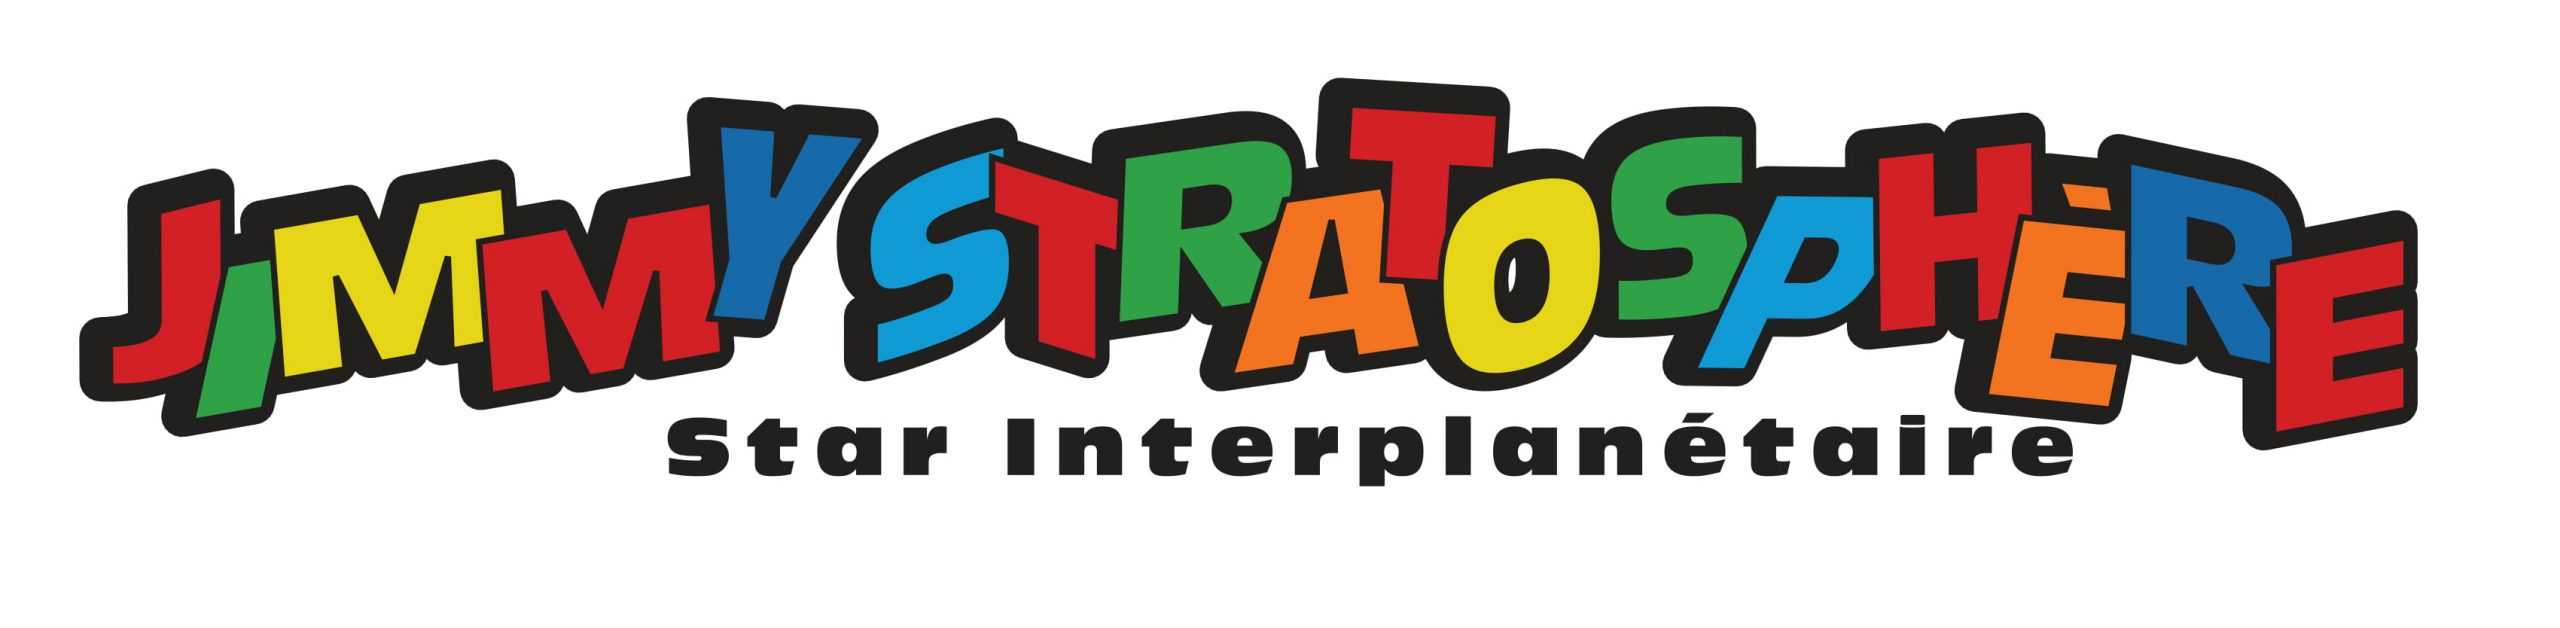 Logo Jimmy Stratosphère Star Interplanétaire